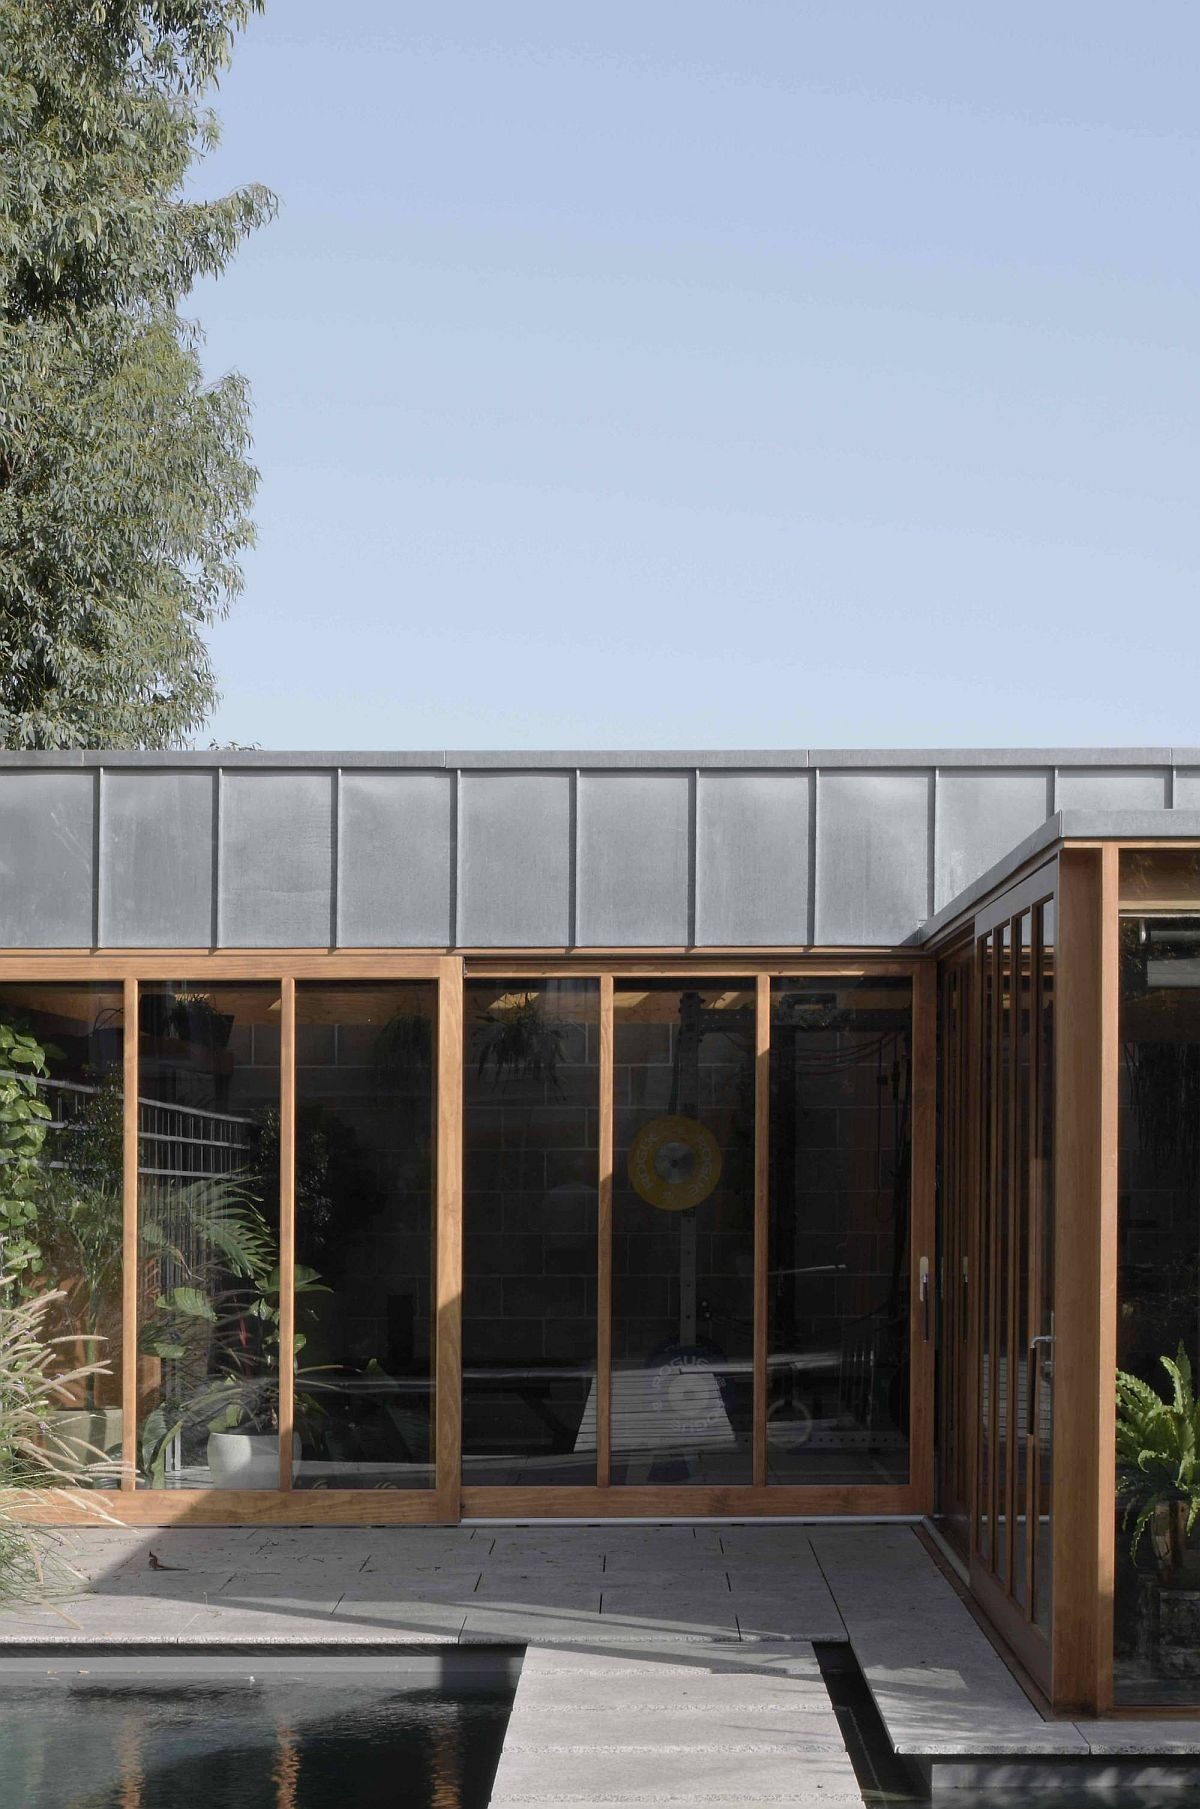 Large Eucalyptus tree outside offers shade to the stylish garden room